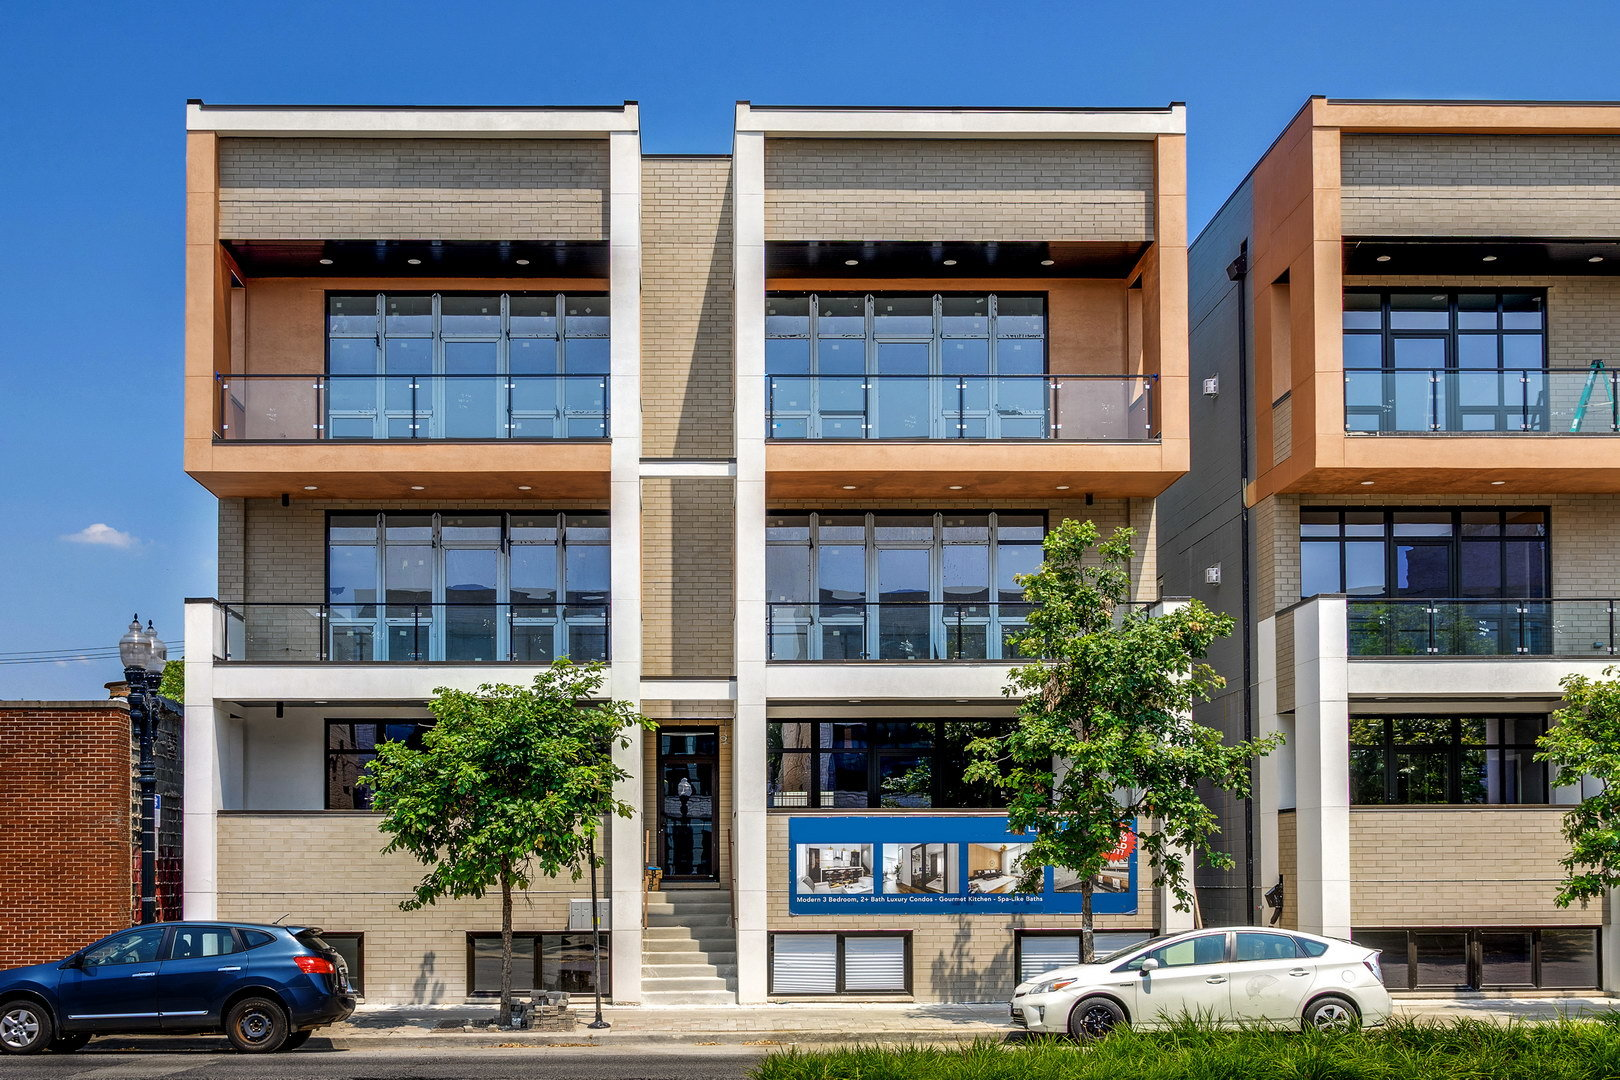 NORTH CENTER NEW CONSTRUCTION CONDOS BY AWARD WINNING RD PRECISION IS JUST A FEW STEPS AWAY FROM REV